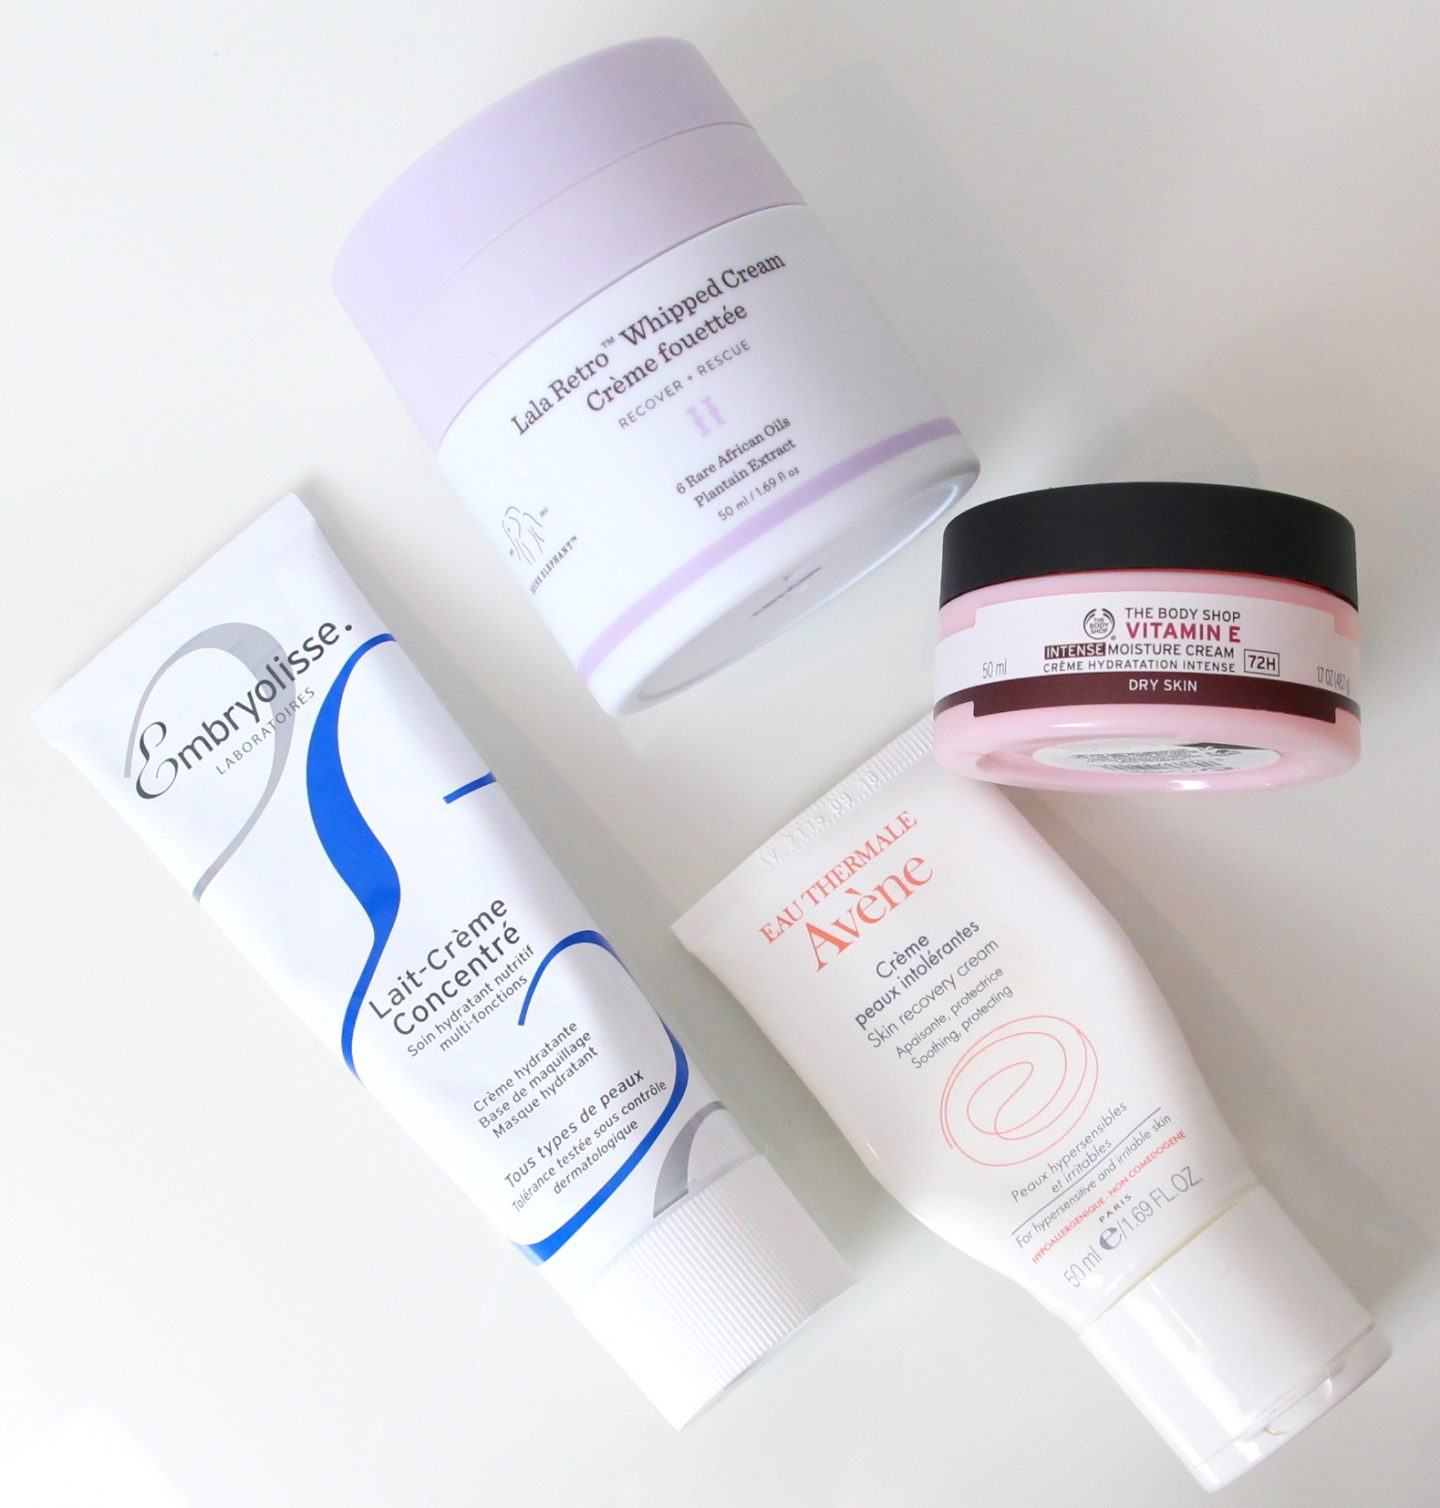 The Body Shop Vitamin E Intense Moisture Cream, Drunk Elephant Lala Retro Whipped Cream, Avene Skin Recovery Cream, Embryolisse Lait-Creme Concentre